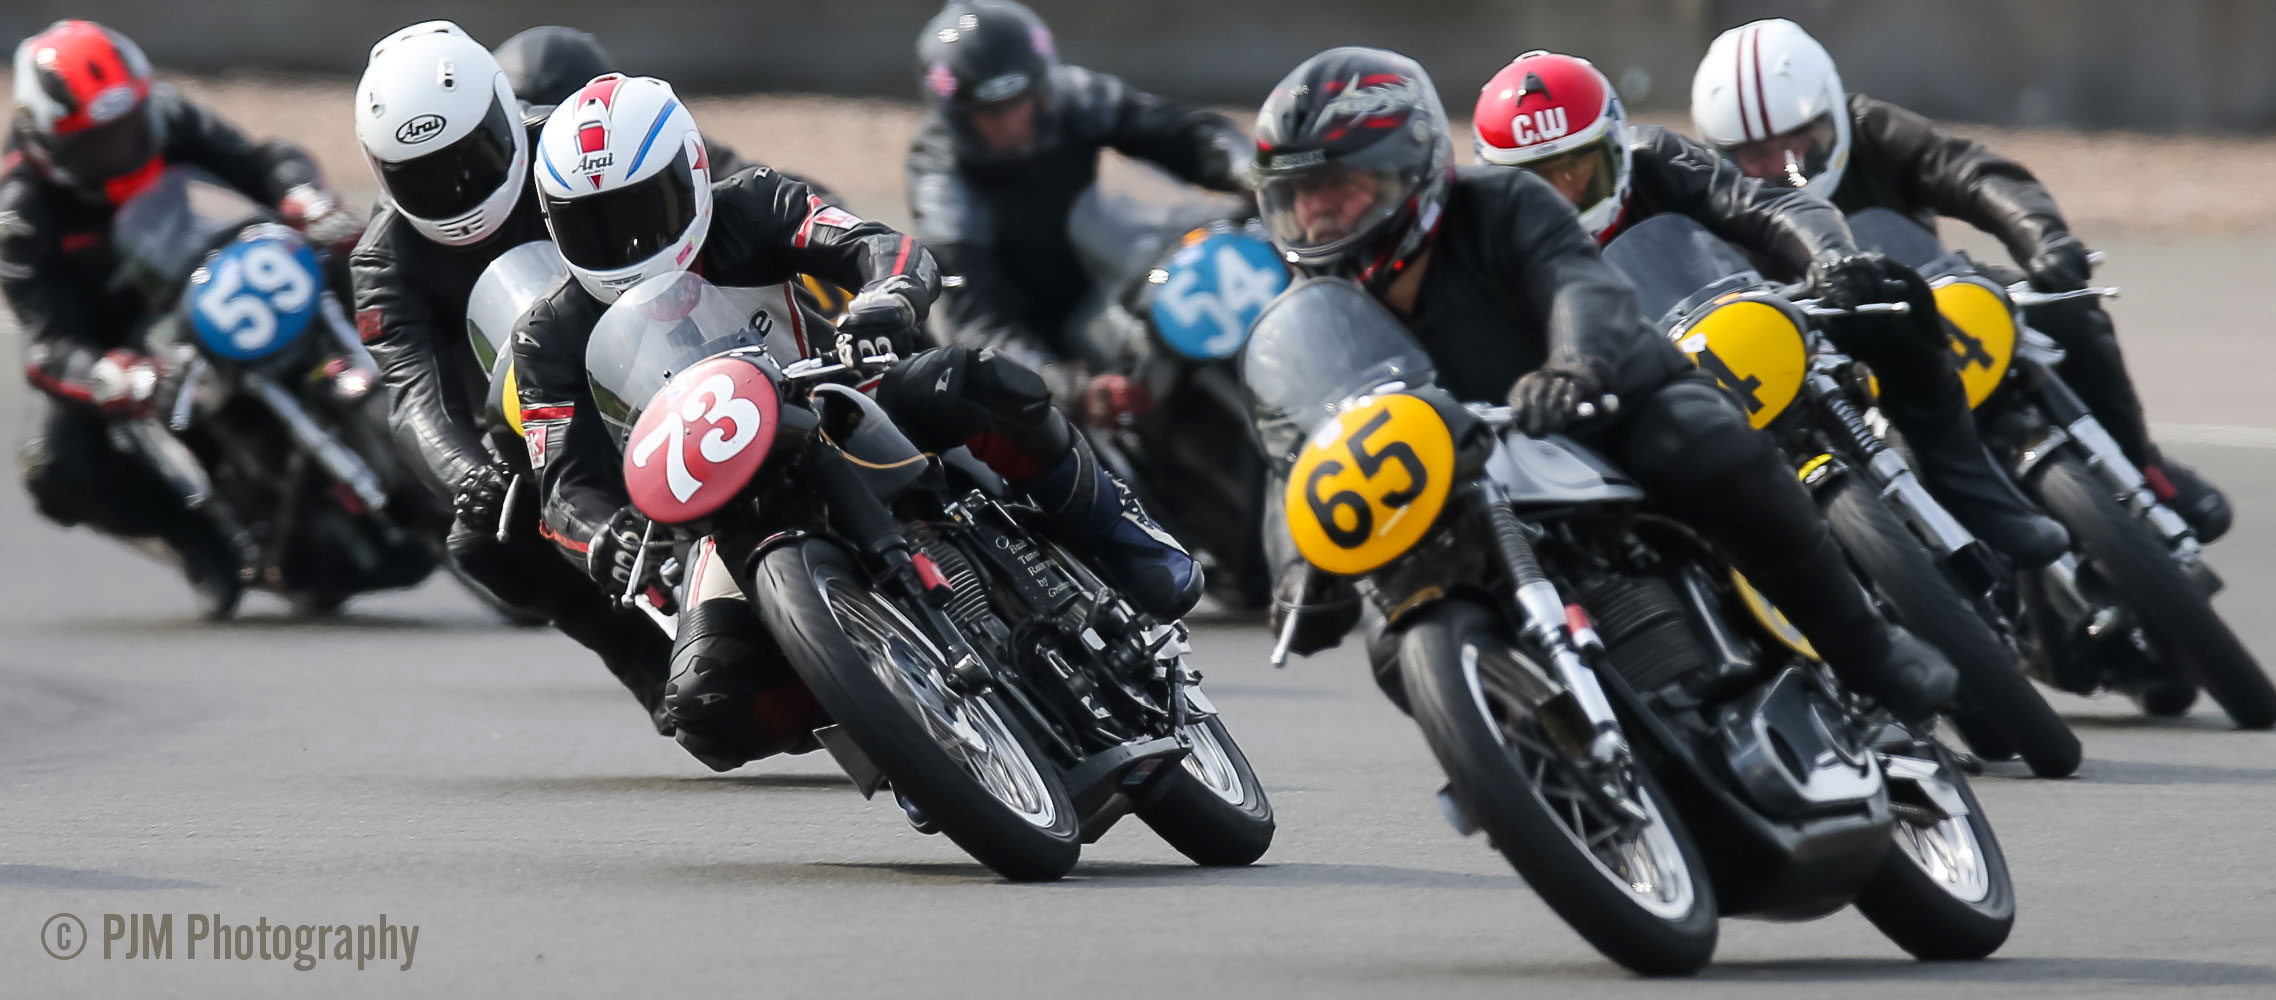 Ken Perch in his first Lansdowne season at Donington Park Classic Racing